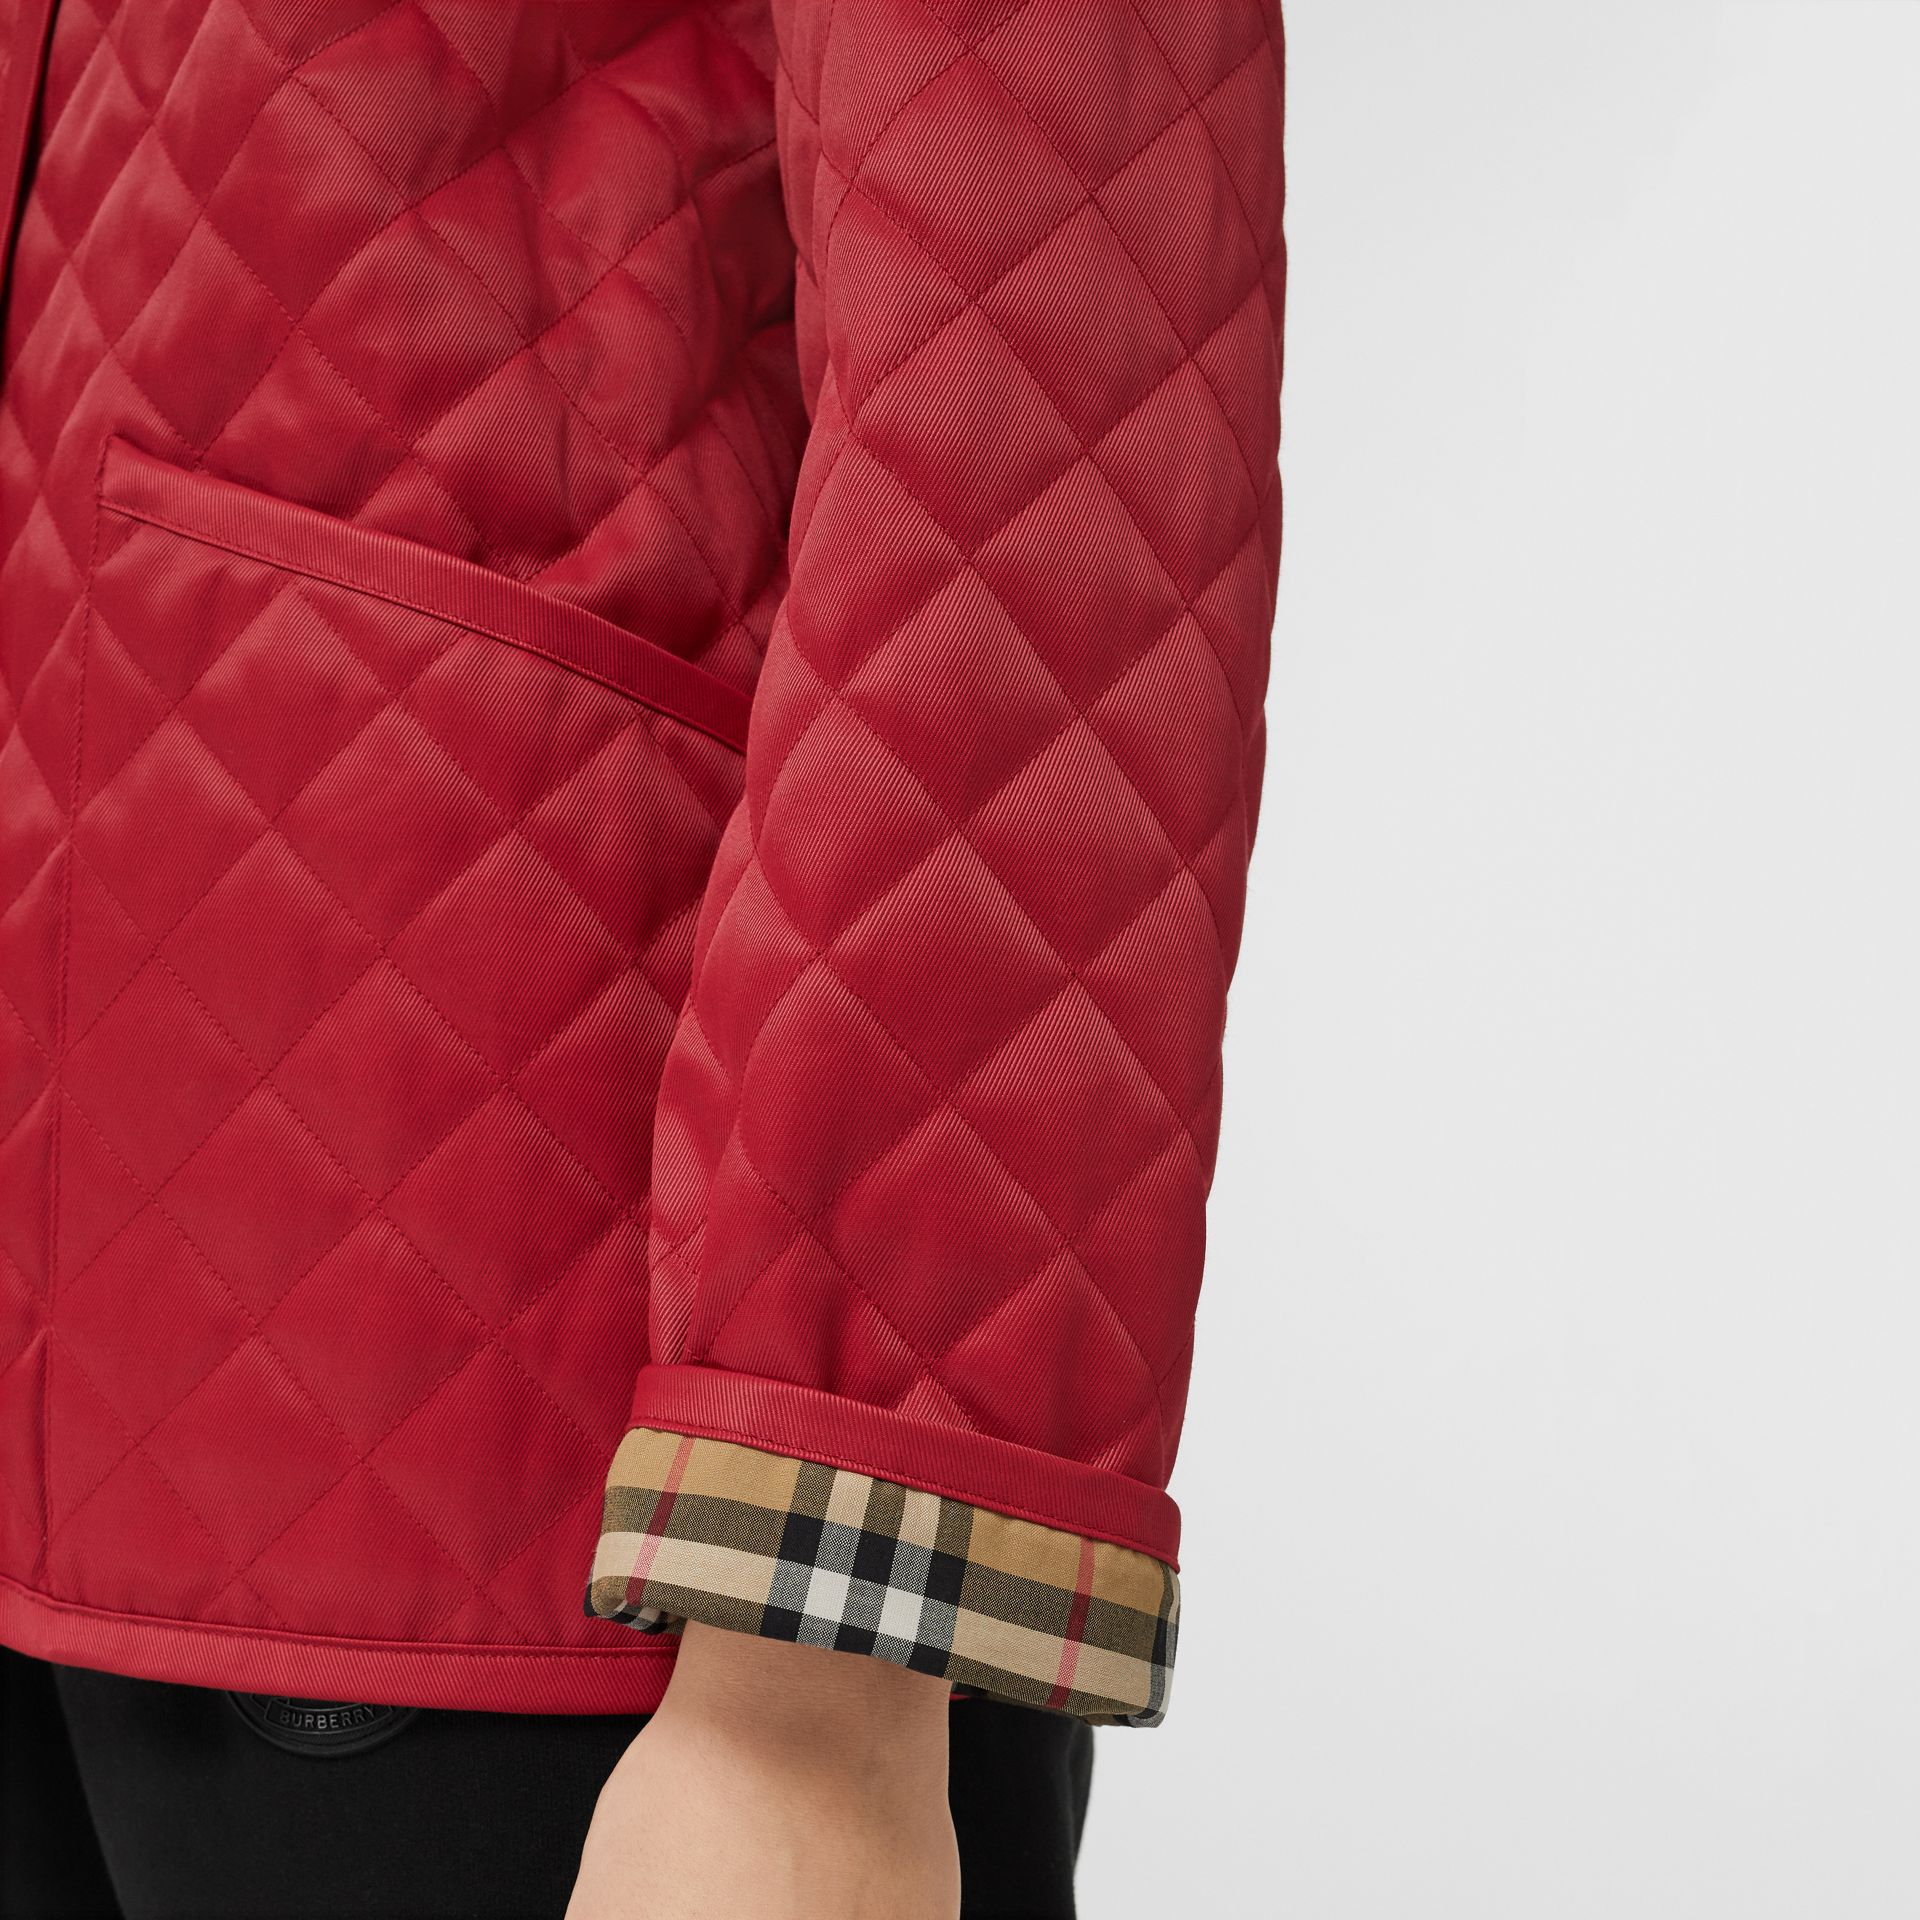 Diamond Quilted Barn Jacket in Red - Women | Burberry - gallery image 5